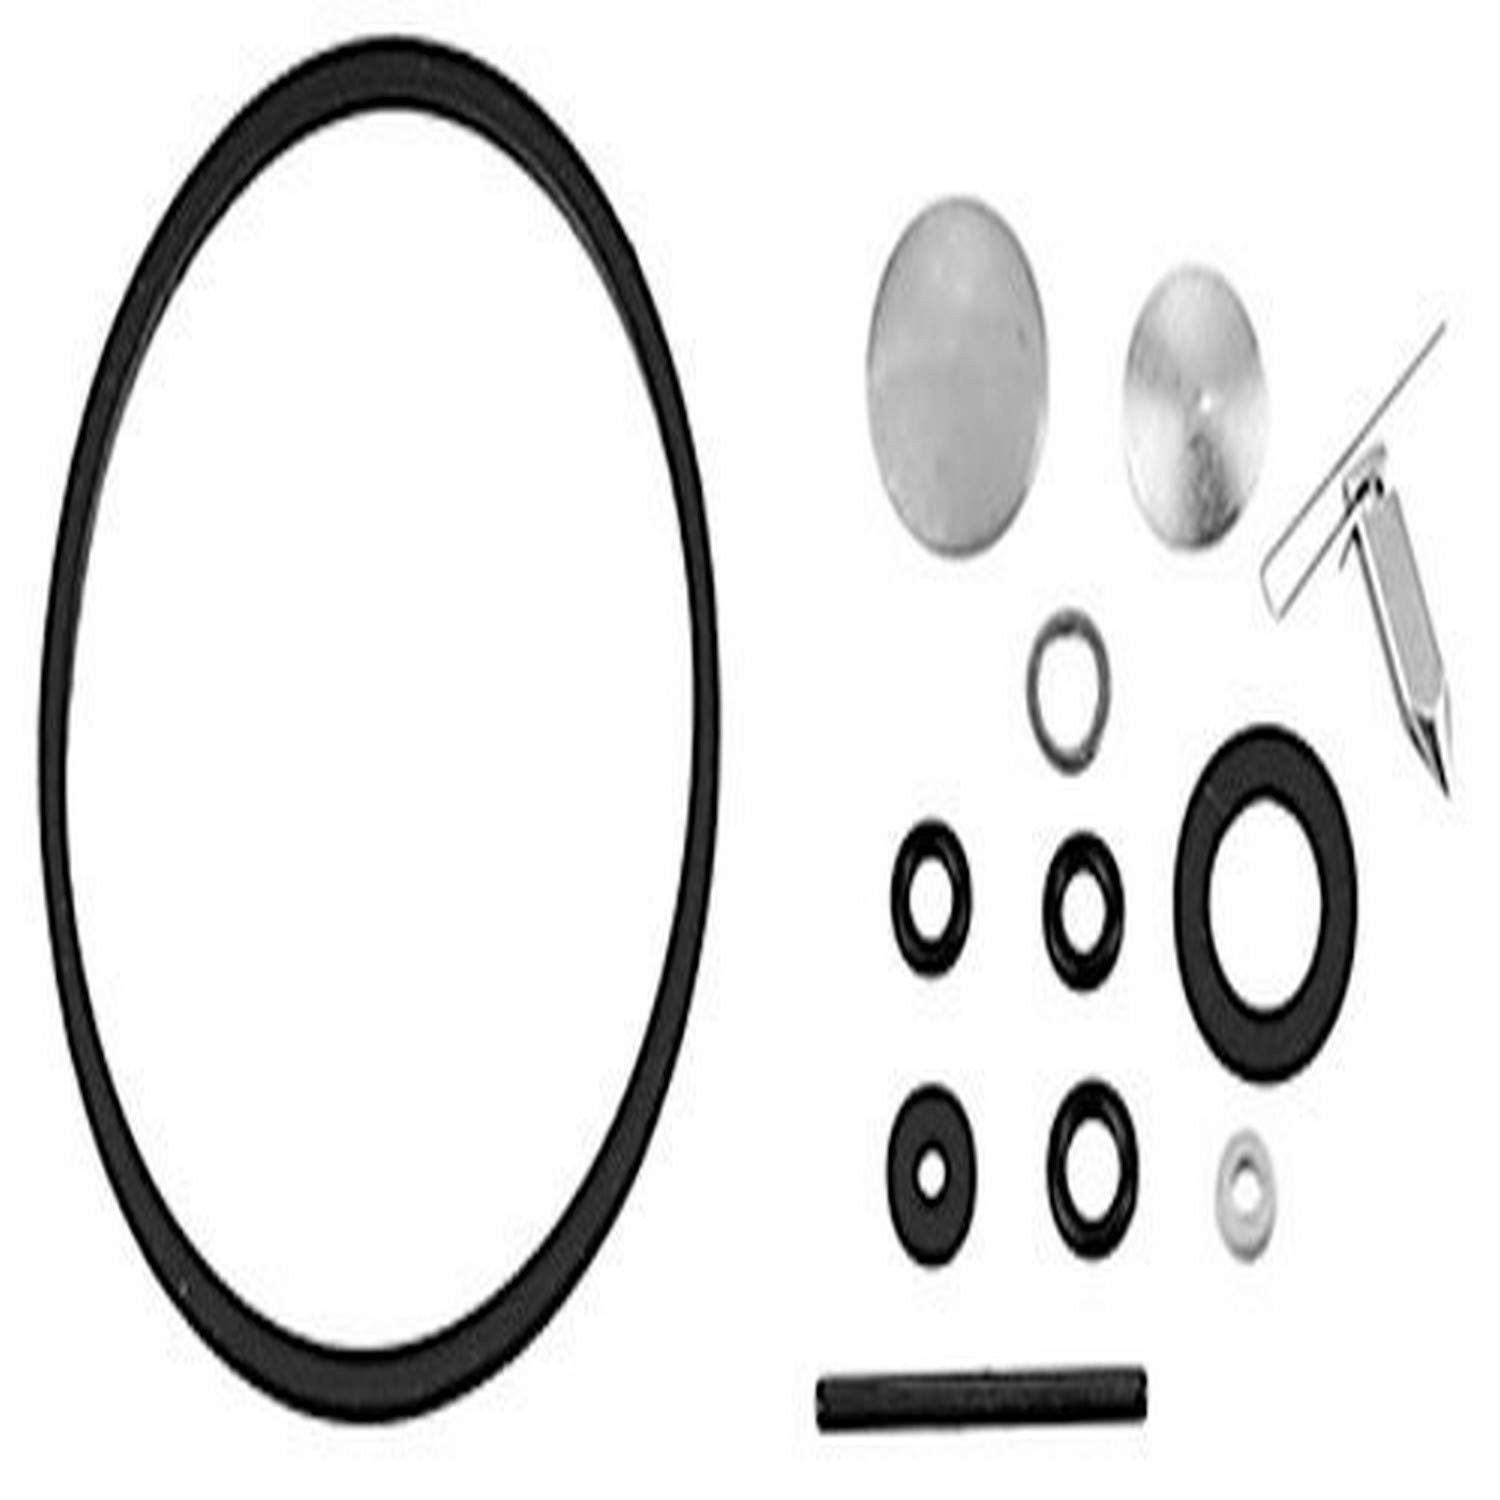 NEW OREGON OIL SEAL FITS TECUMSEH 31950 49-053 FREE SHIPPING